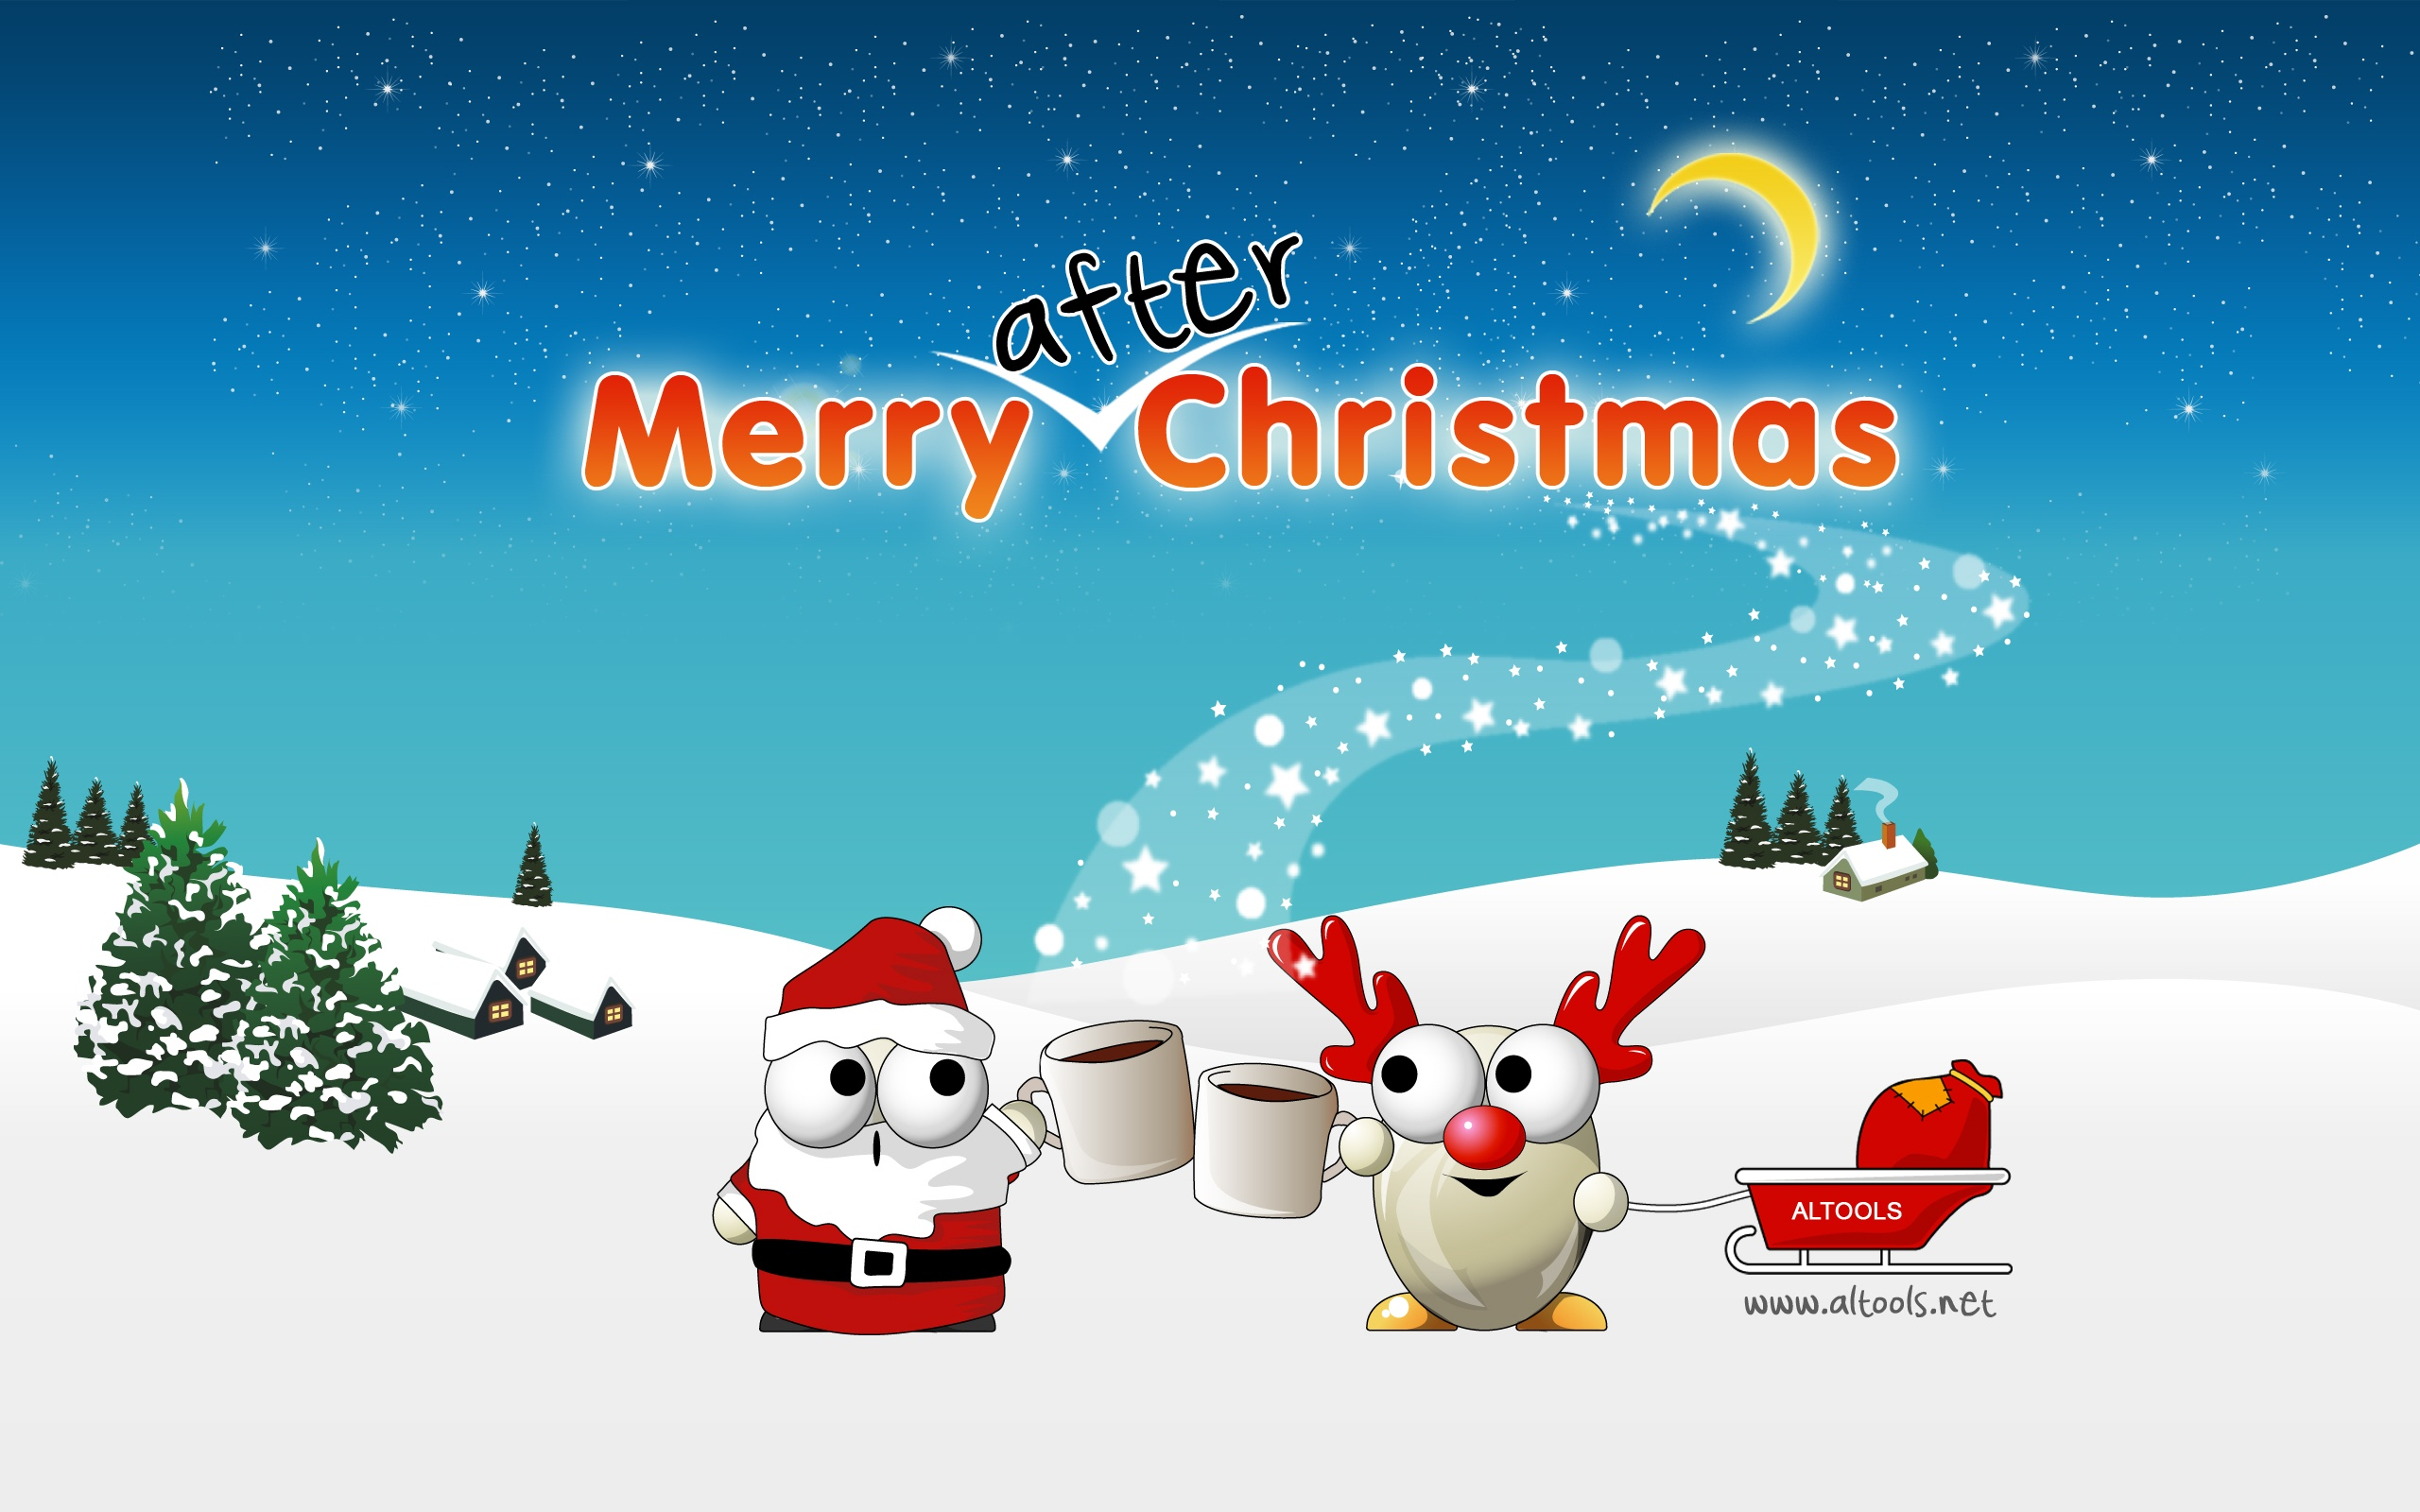 Happy Holidays Anime Girl Wallpaper 1920x1080 Altools After Chistmas Wallpapers Altools After